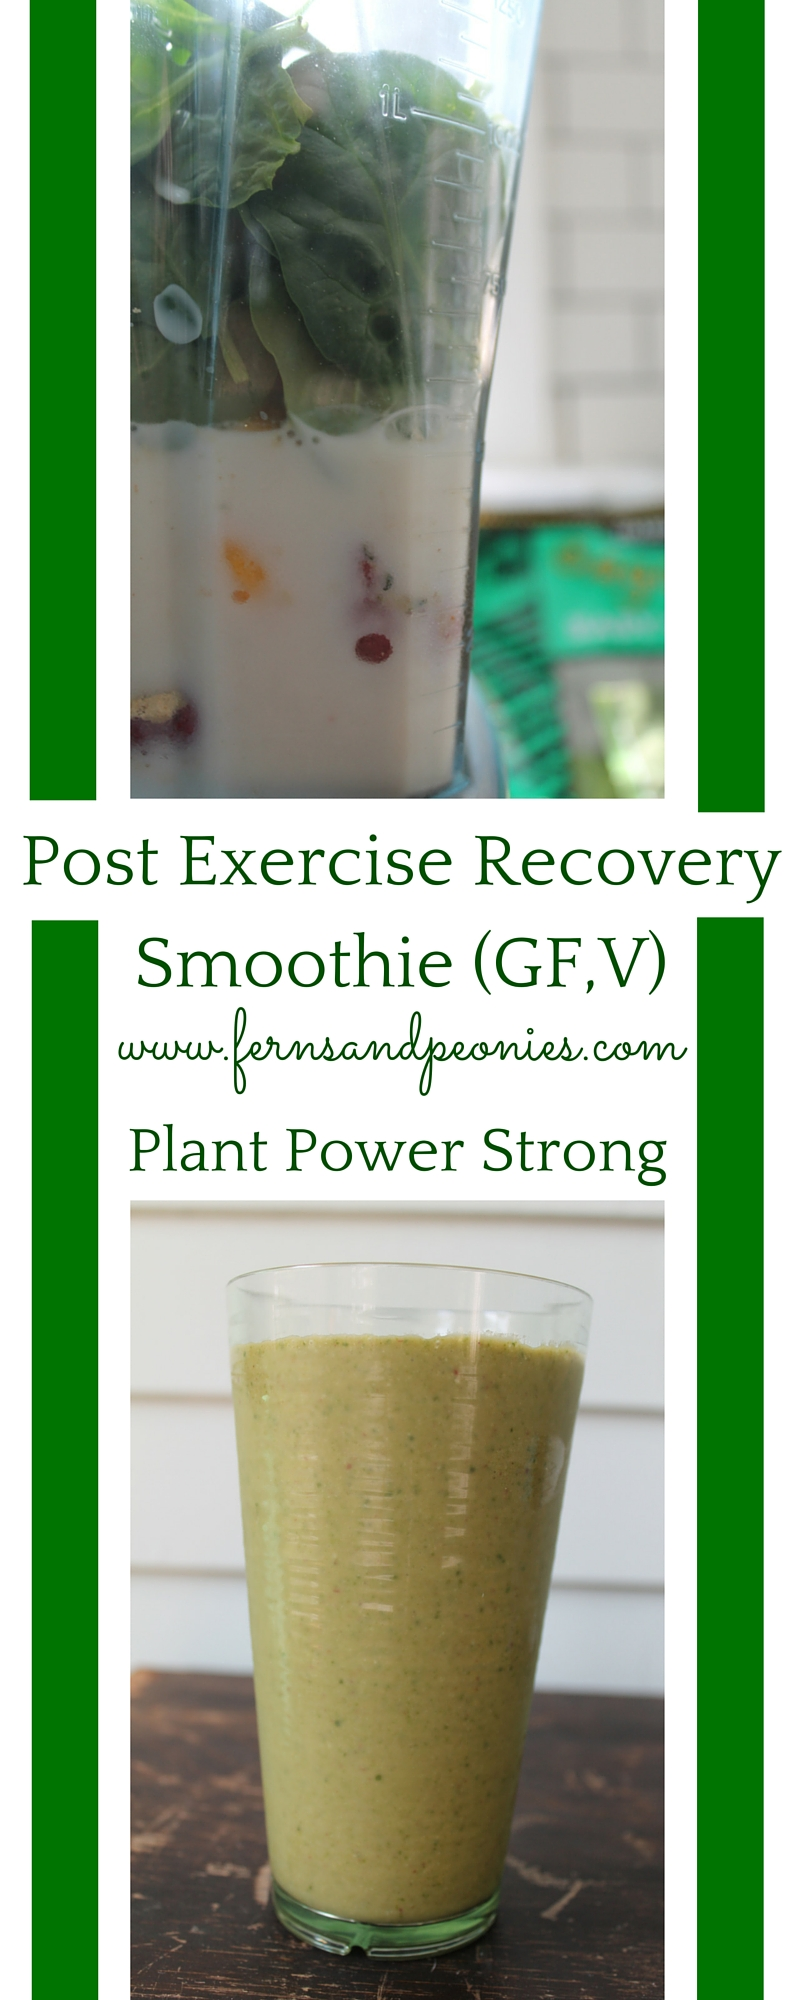 Post Exercise Recovery Smoothie (GF,V) - a plant powered superstar by www.fernsandpeonies.com